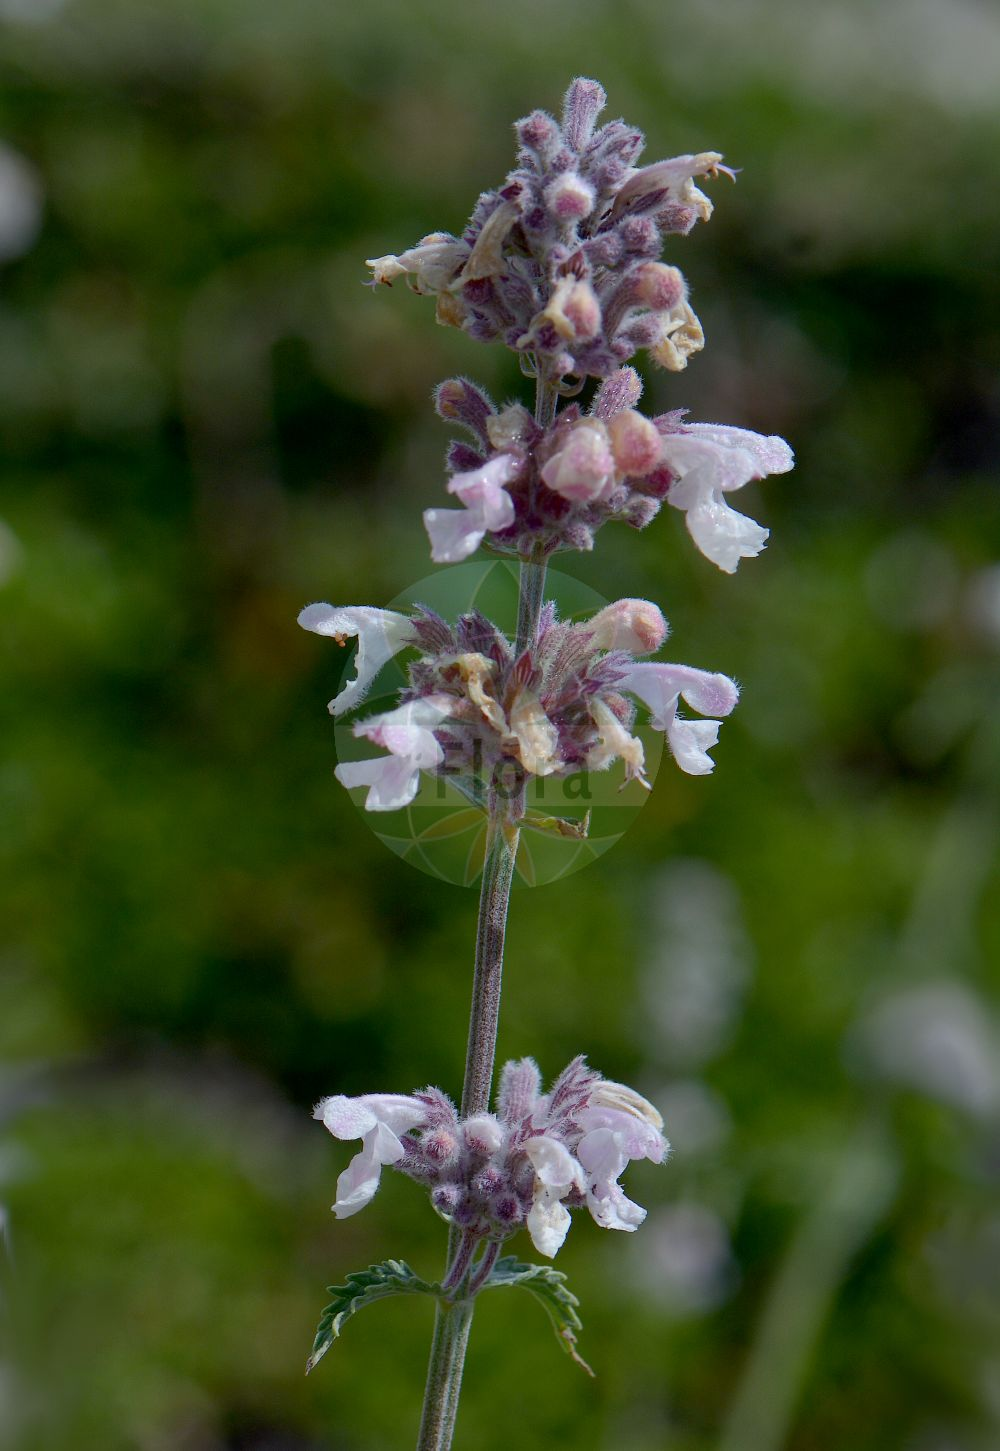 Foto von Nepeta nepetella. Das Foto wurde in Saussurea, Mont Blanc, Valle d'Aosta, Italien aufgenommen. ---- Photo of Nepeta nepetella.The picture was taken in Saussurea, Mont Blanc, Valle d'Aosta, Italy.(Nepeta nepetella,Cataria nepetella,Glechoma nepetella,,Nepeta,Katzenminze,Catnip,Lamiaceae,Lippenbluetengewaechse;Lippenbluetler,Nettle family)